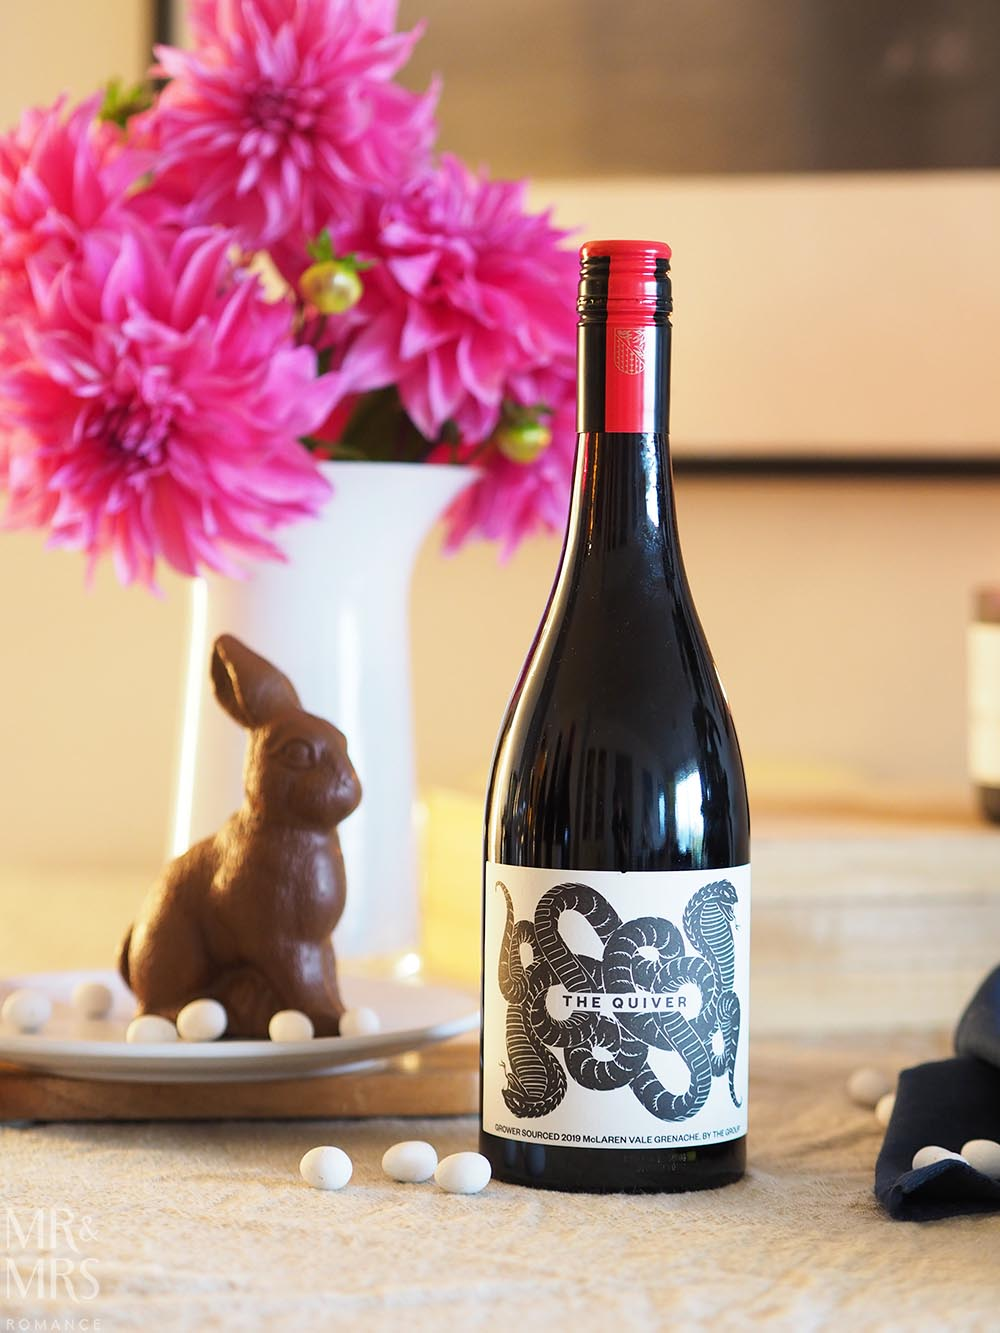 Wine for Easter - The Group Wine Co The Quiver Grenache